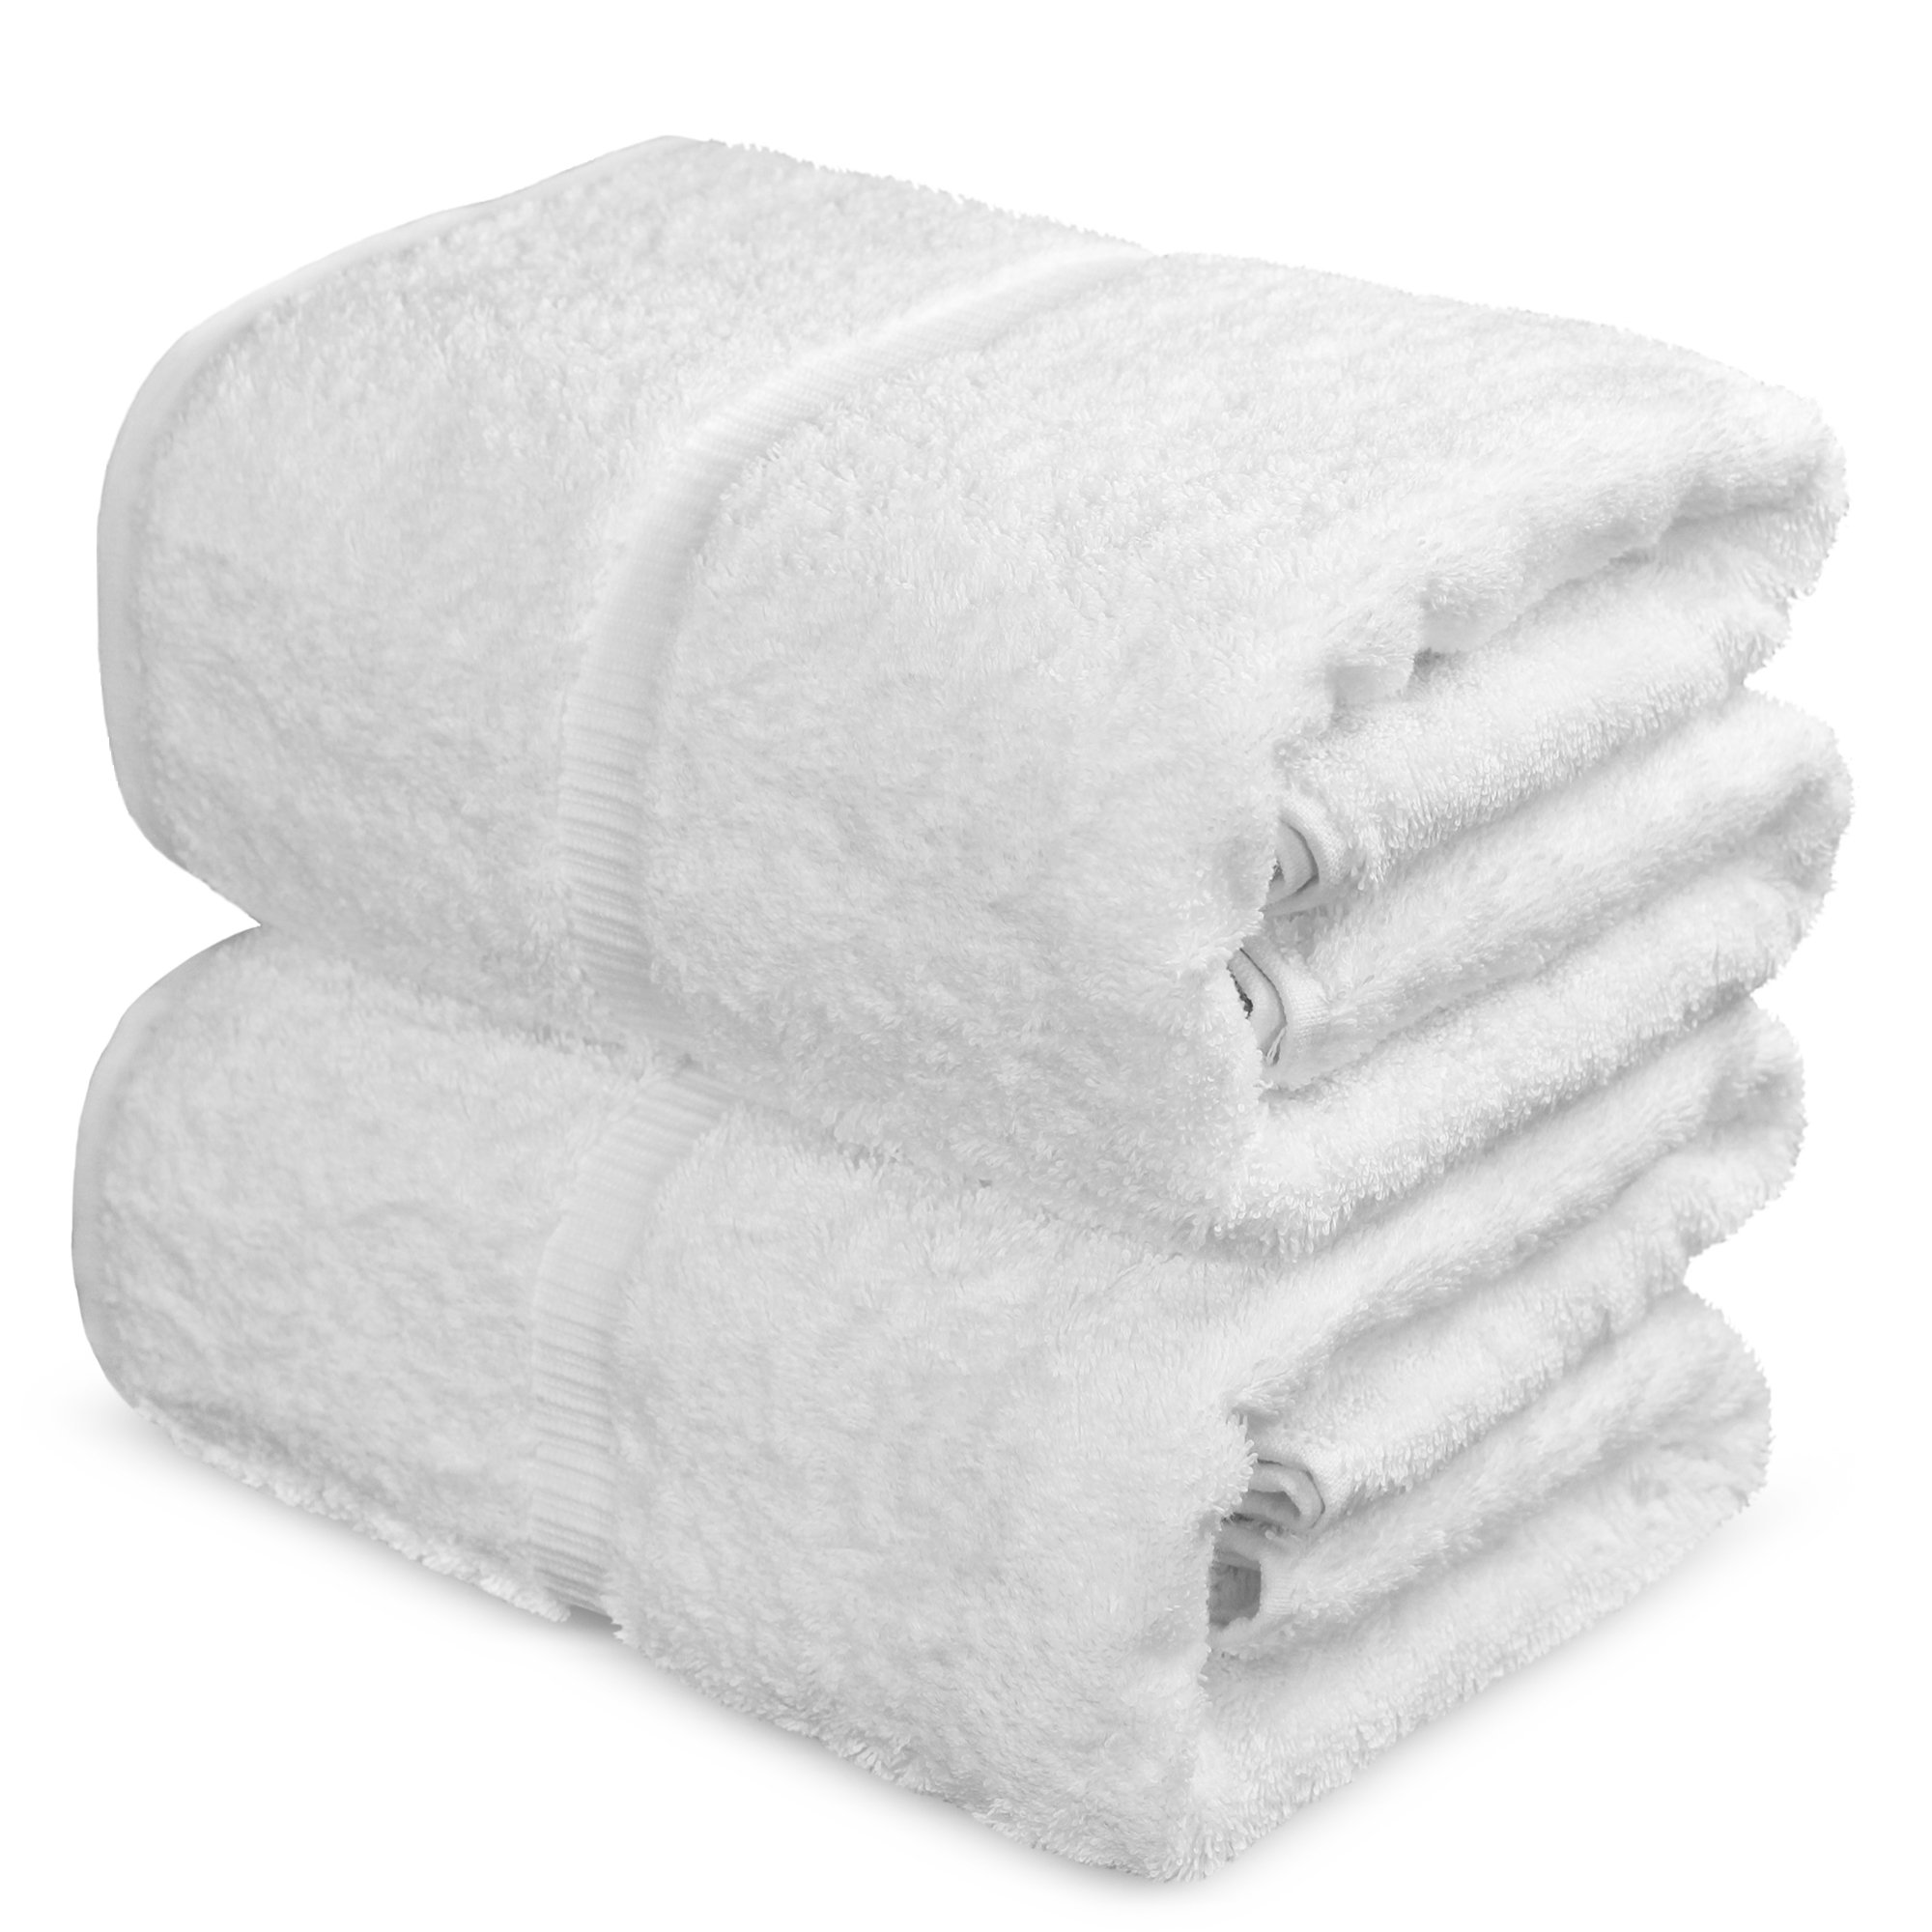 Towel Bazaar 100% Turkish Cotton Bath Sheets, 700 GSM, 35 x 70 Inch, Eco-Friendly (2 Pack, White) by Towel Bazaar